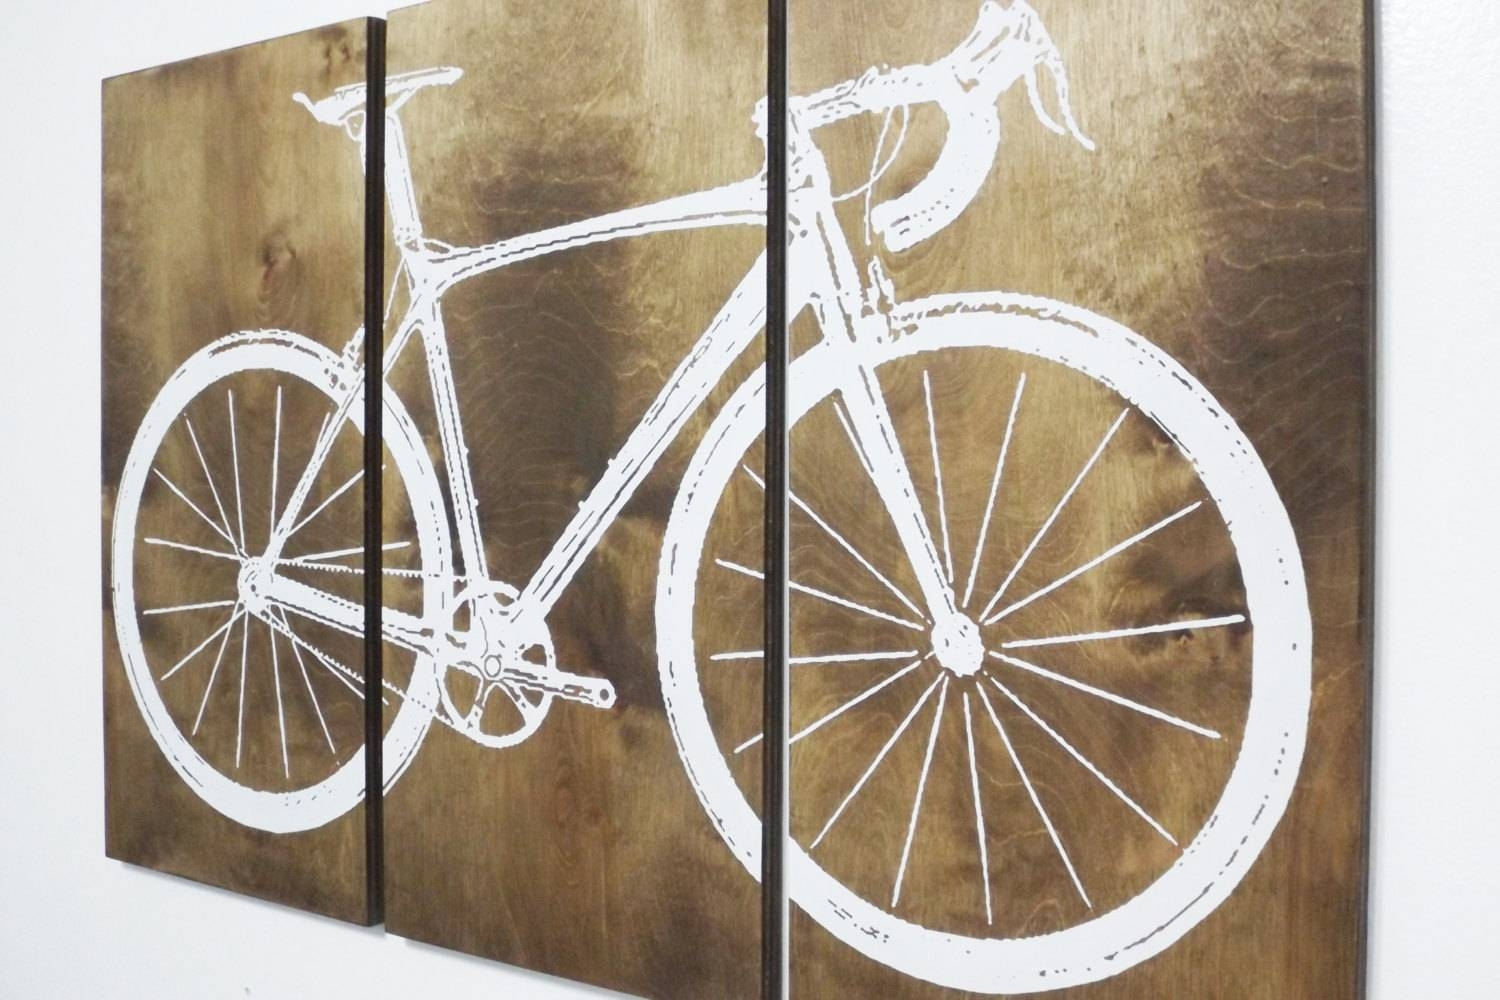 Old Fashioned Bicycle Make A Photo Gallery Bicycle Wall Art – Home With Best And Newest Bicycle Wall Art Decor (View 12 of 20)